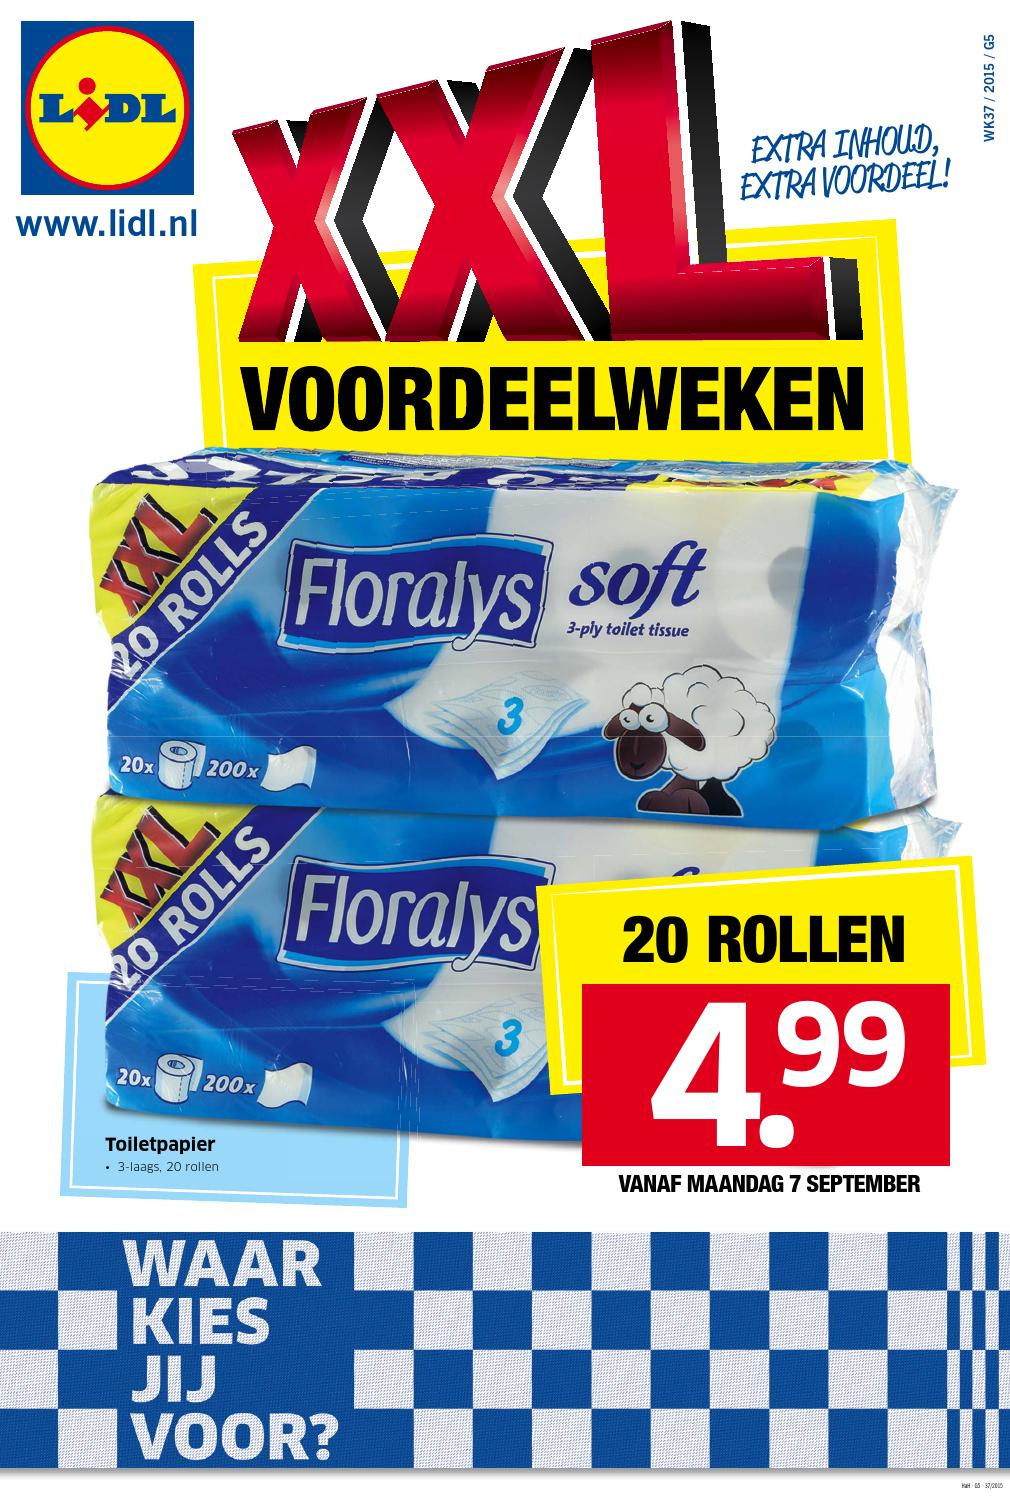 Lidl Xxl Aanbiedingen Lidl Folder Week 37 2015 By Online Folders Issuu